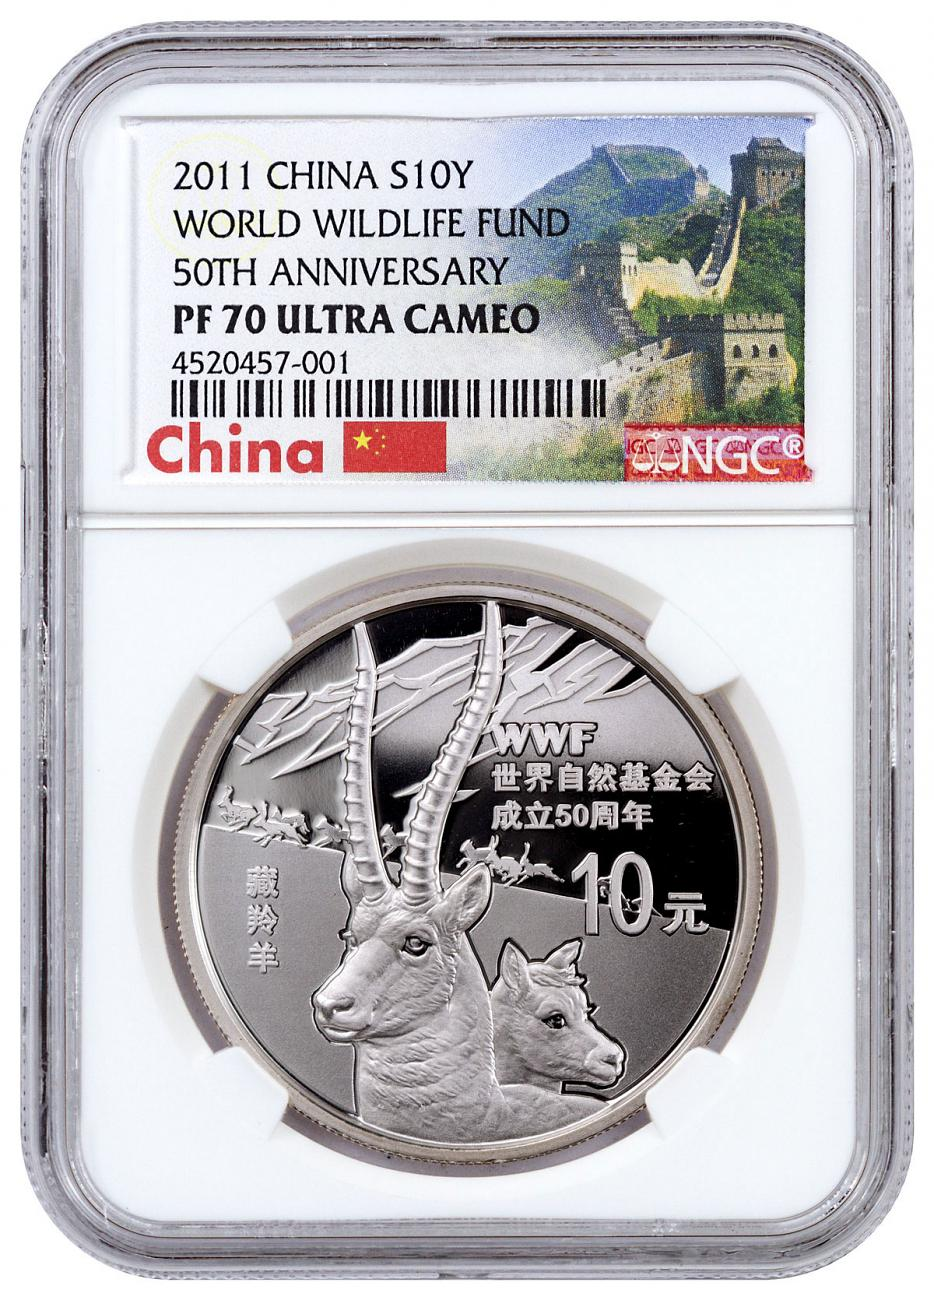 2011 China World Wildlife Fund - Tibetan Antelope 1 oz Silver Proof ¥10 Coin NGC PF70 UC